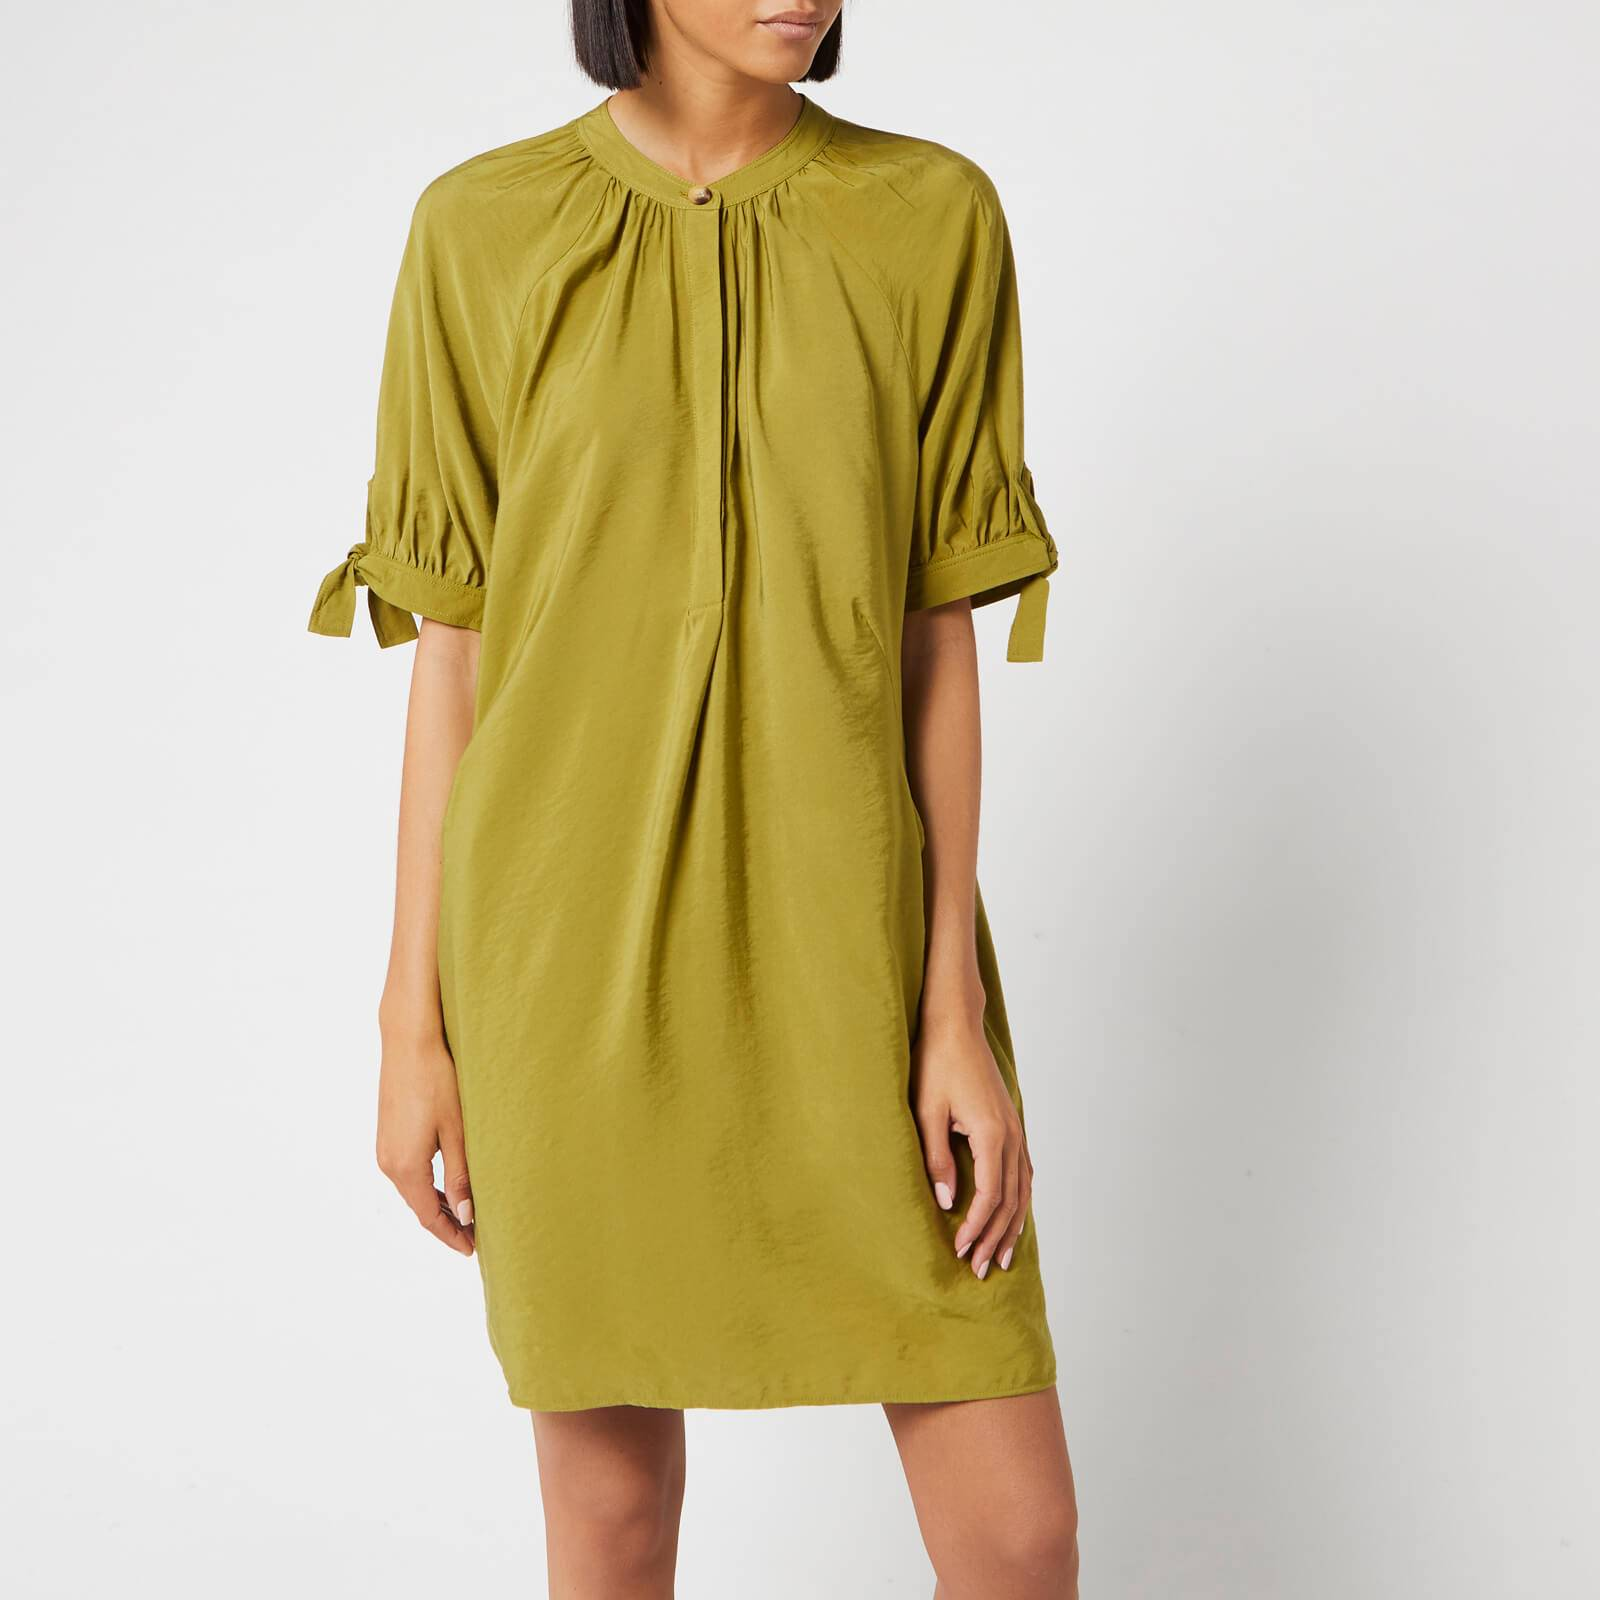 Whistles Women's Celestine Dress - Olive - M - Green